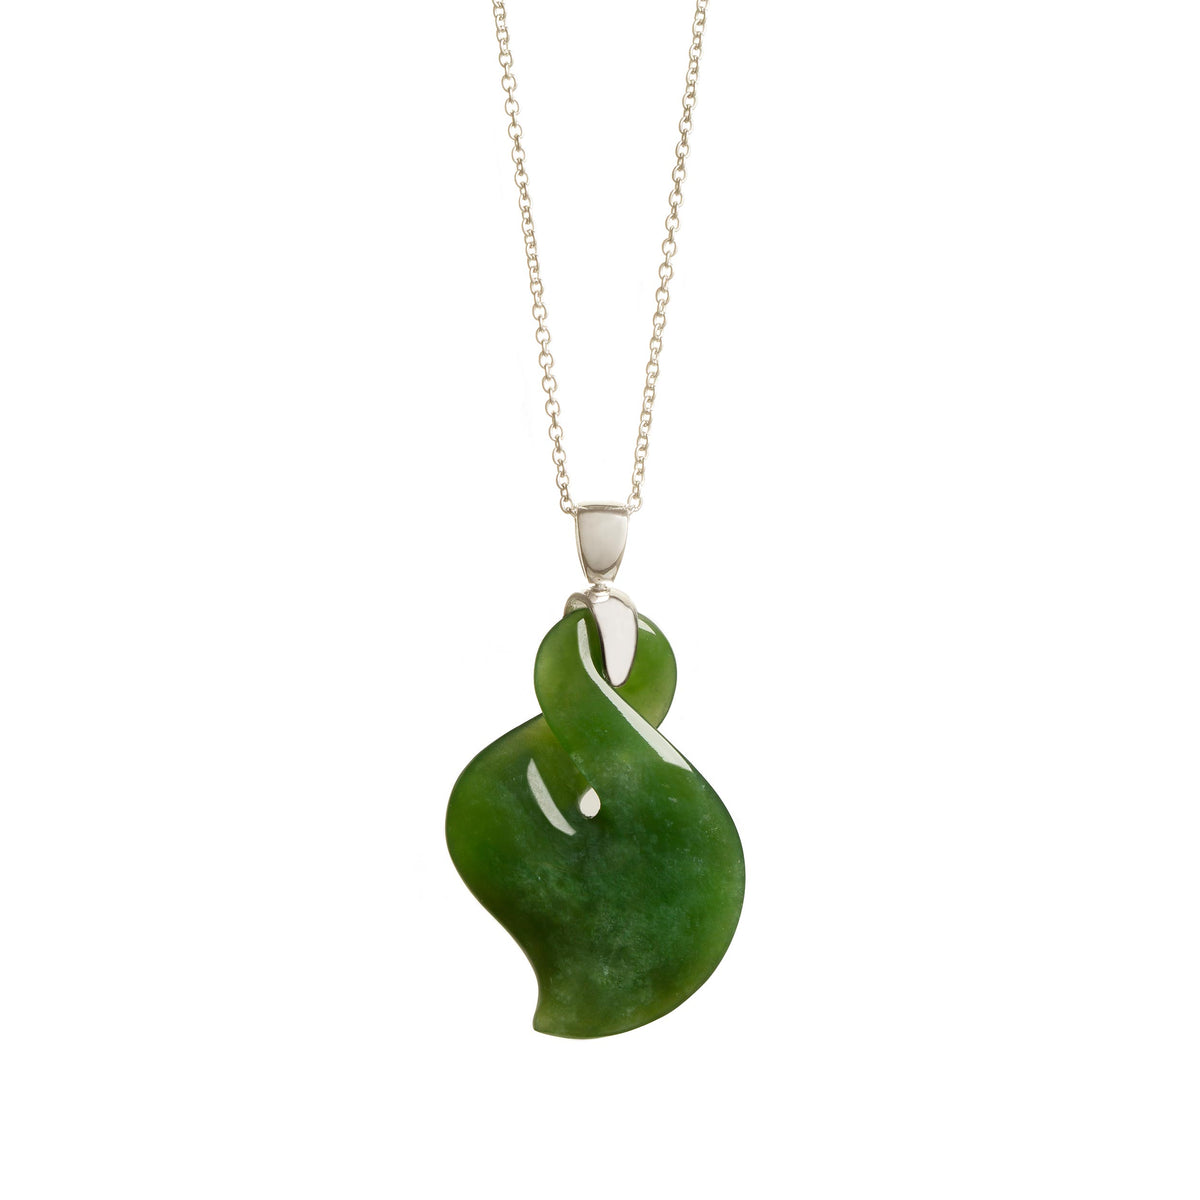 New Zealand Greenstone Silver Bale Pointed Twist Necklace